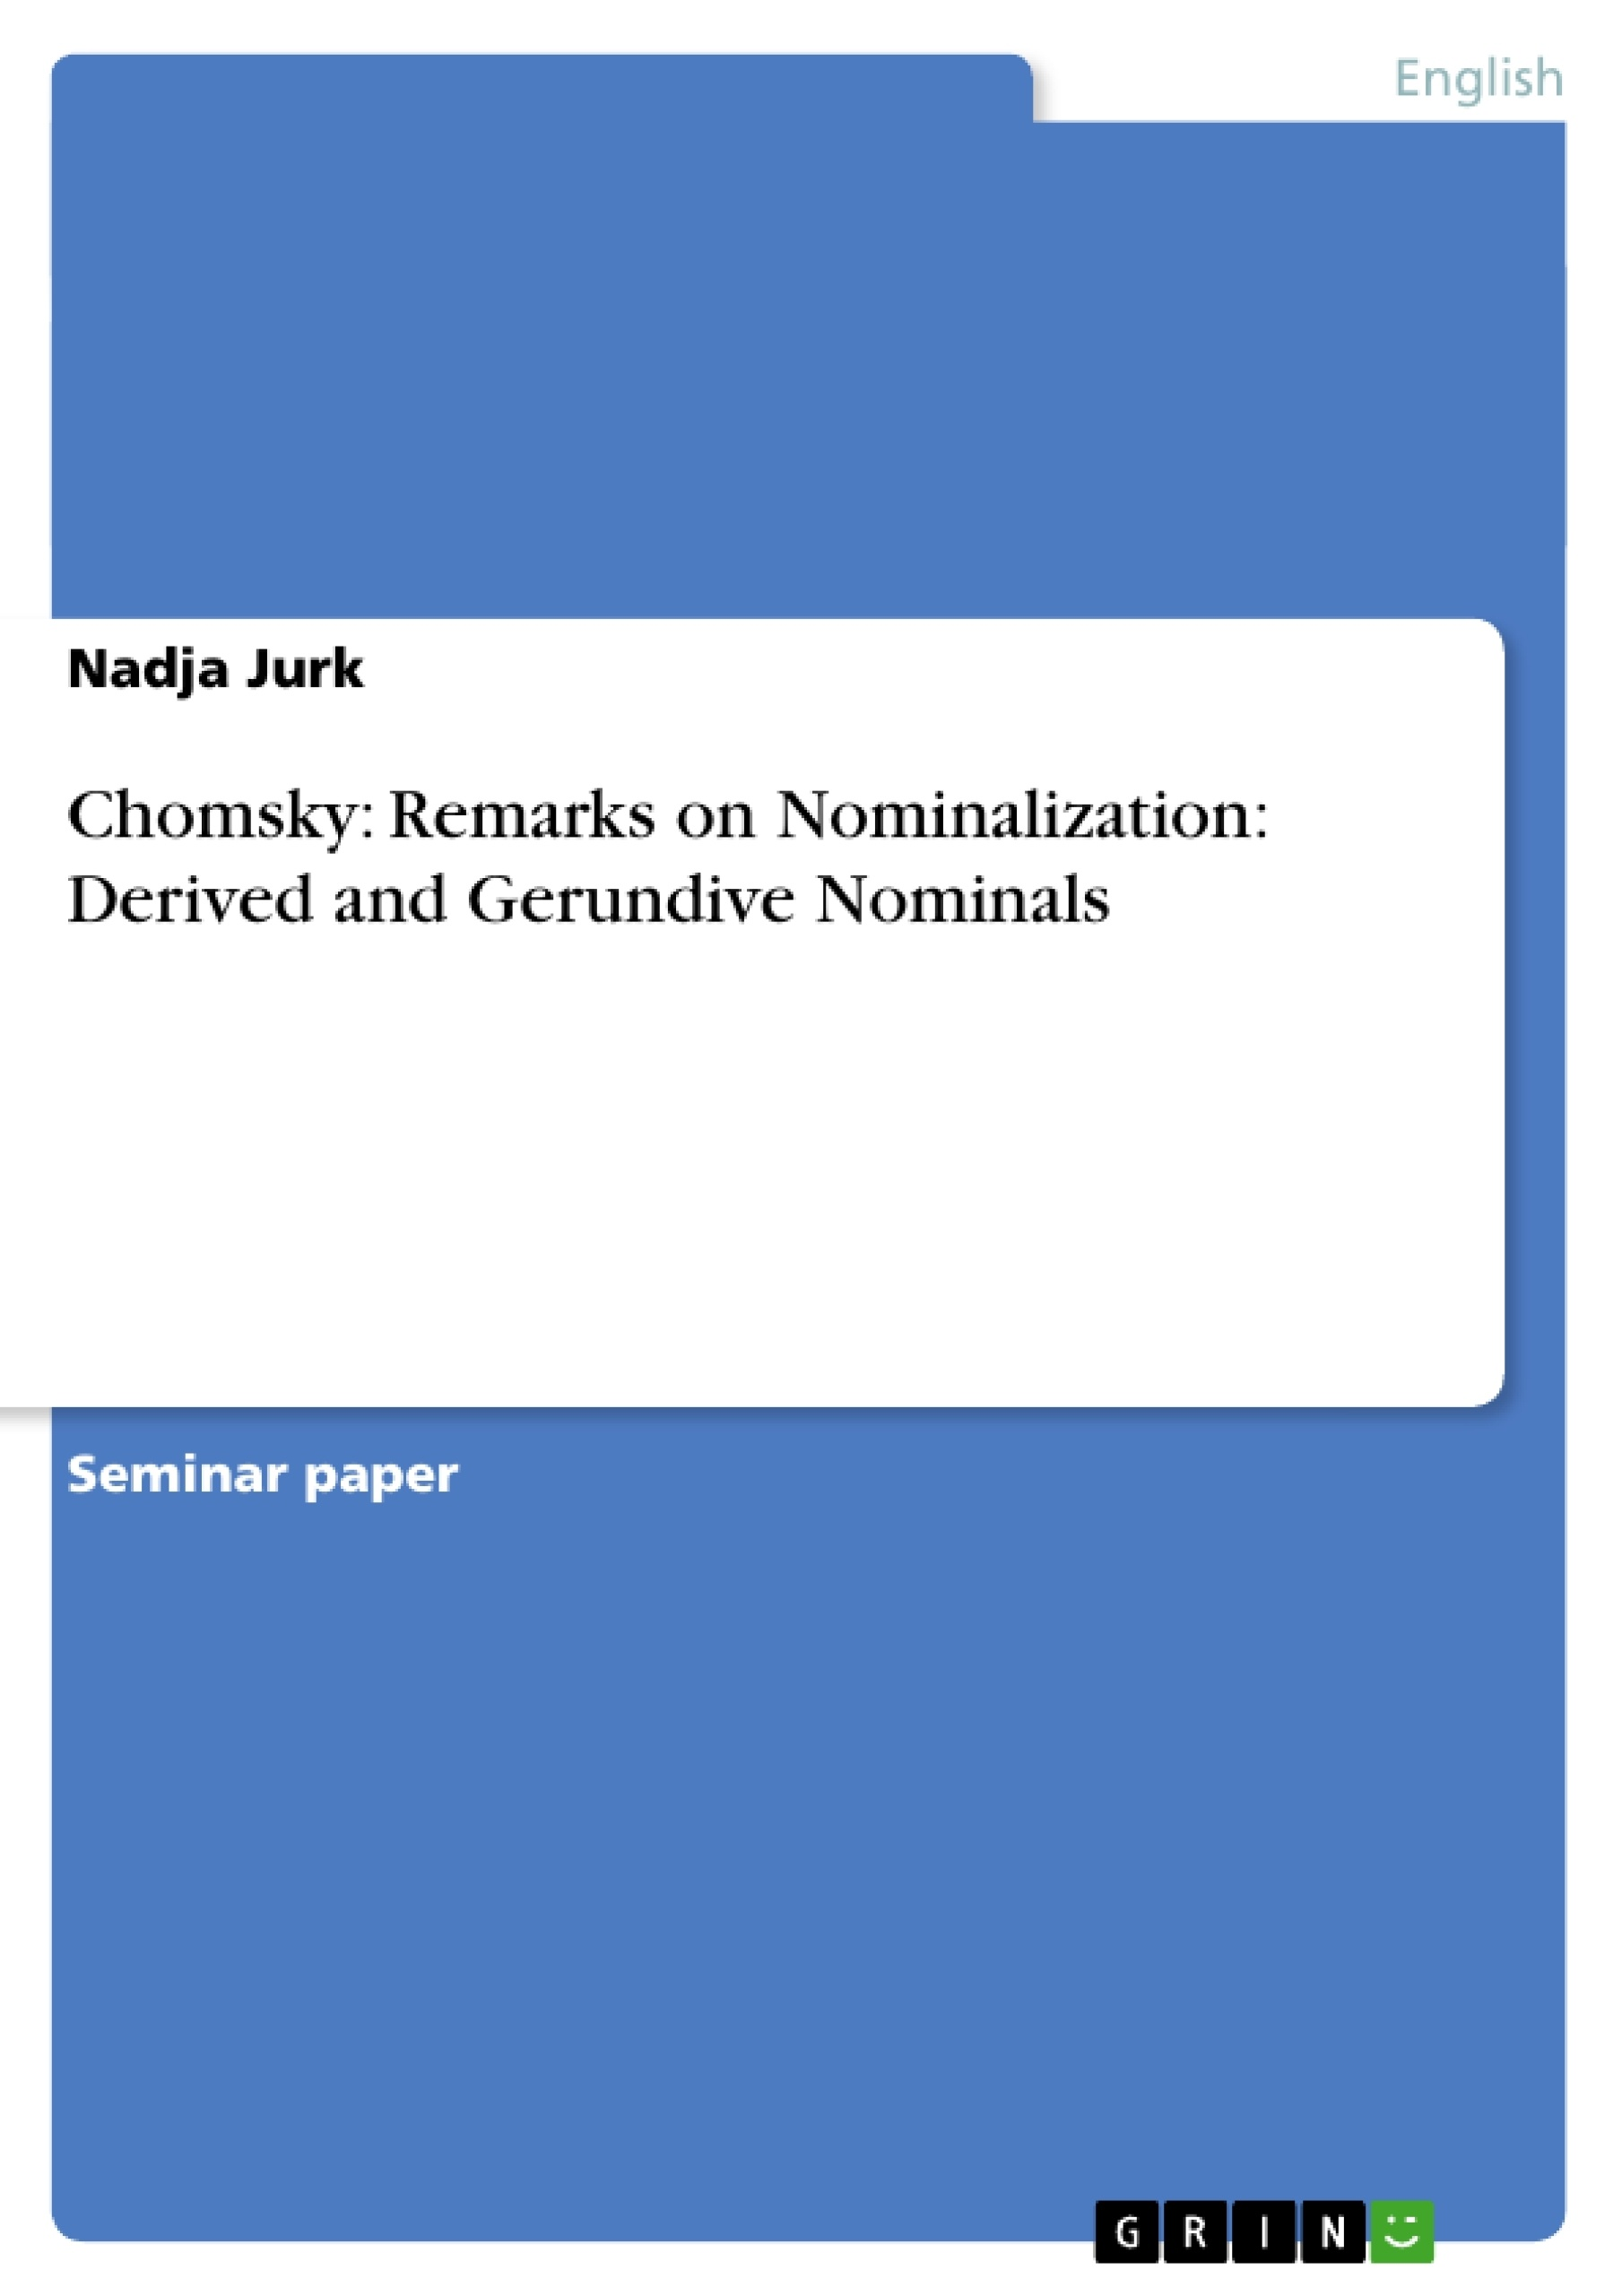 Title: Chomsky: Remarks on Nominalization: Derived and Gerundive Nominals